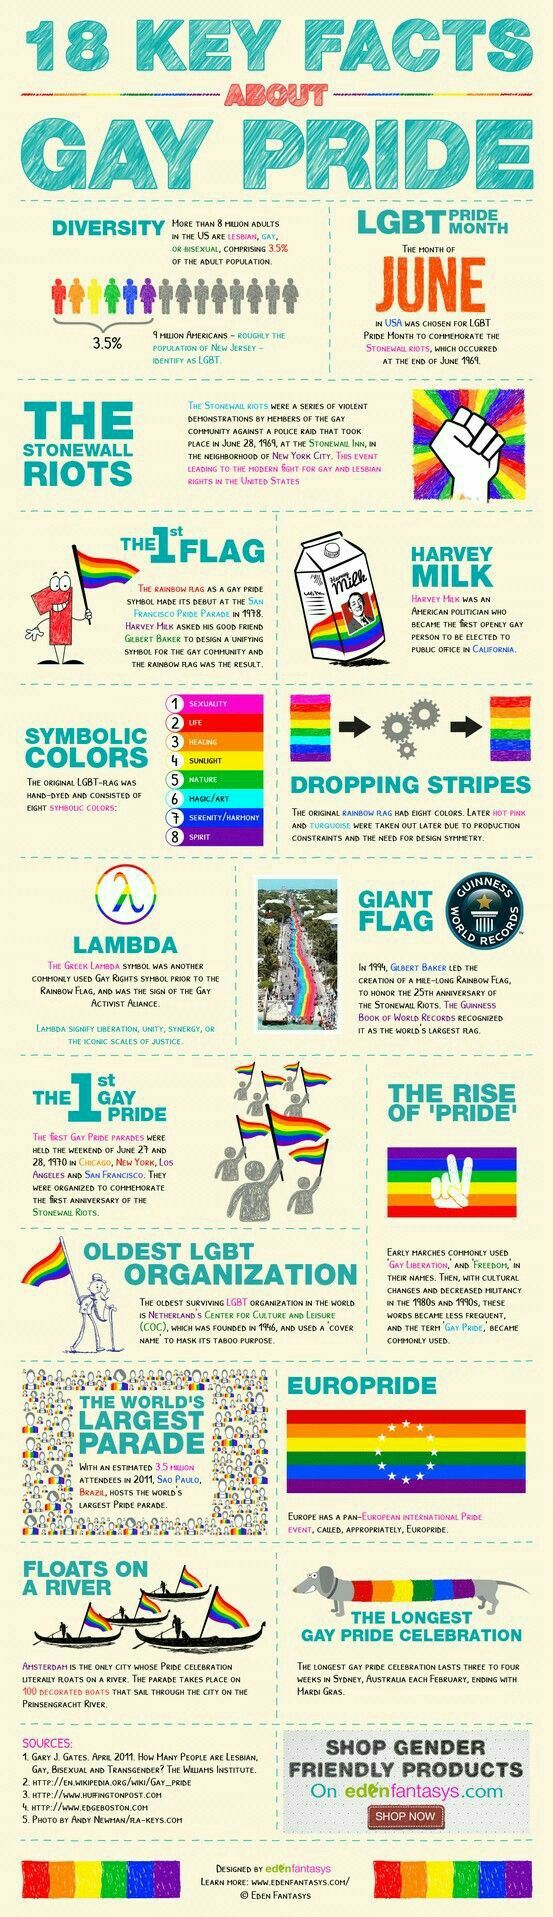 LGBT 18 key facts about gay pride